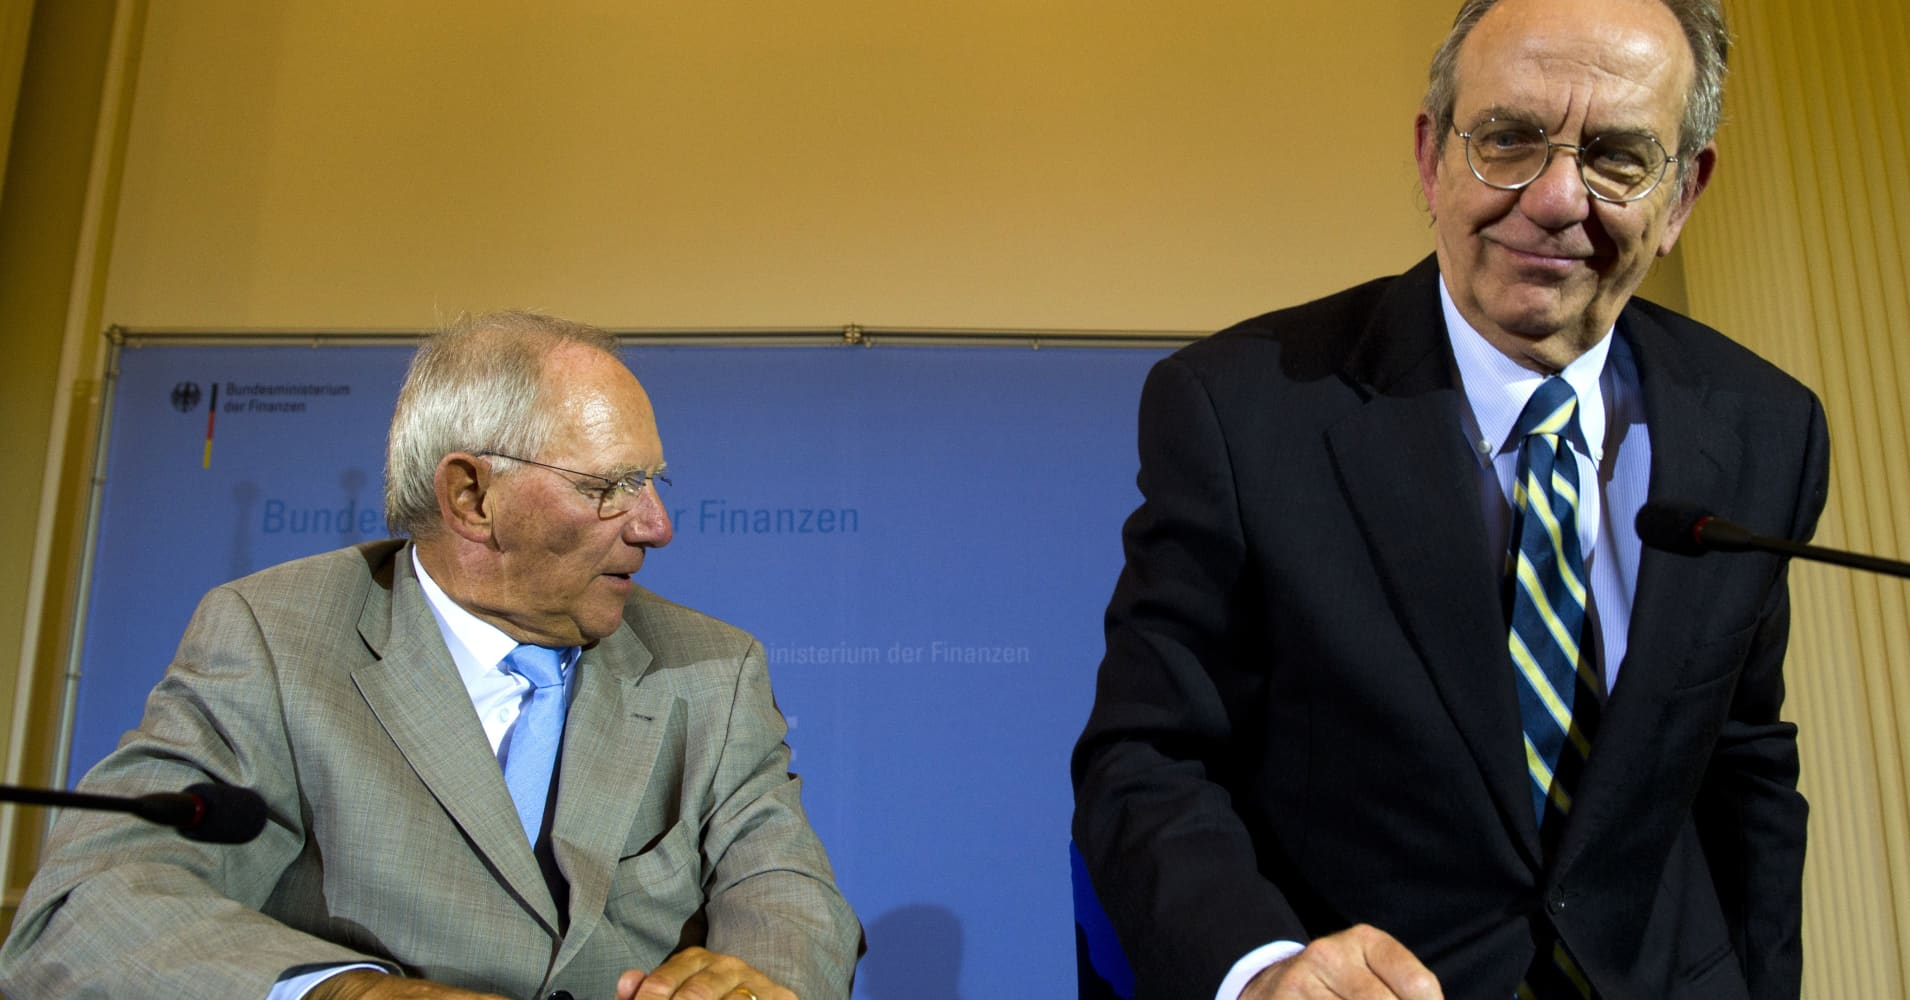 europe leaders discuss euro zone outlook - Wolfgang Schauble Lebenslauf